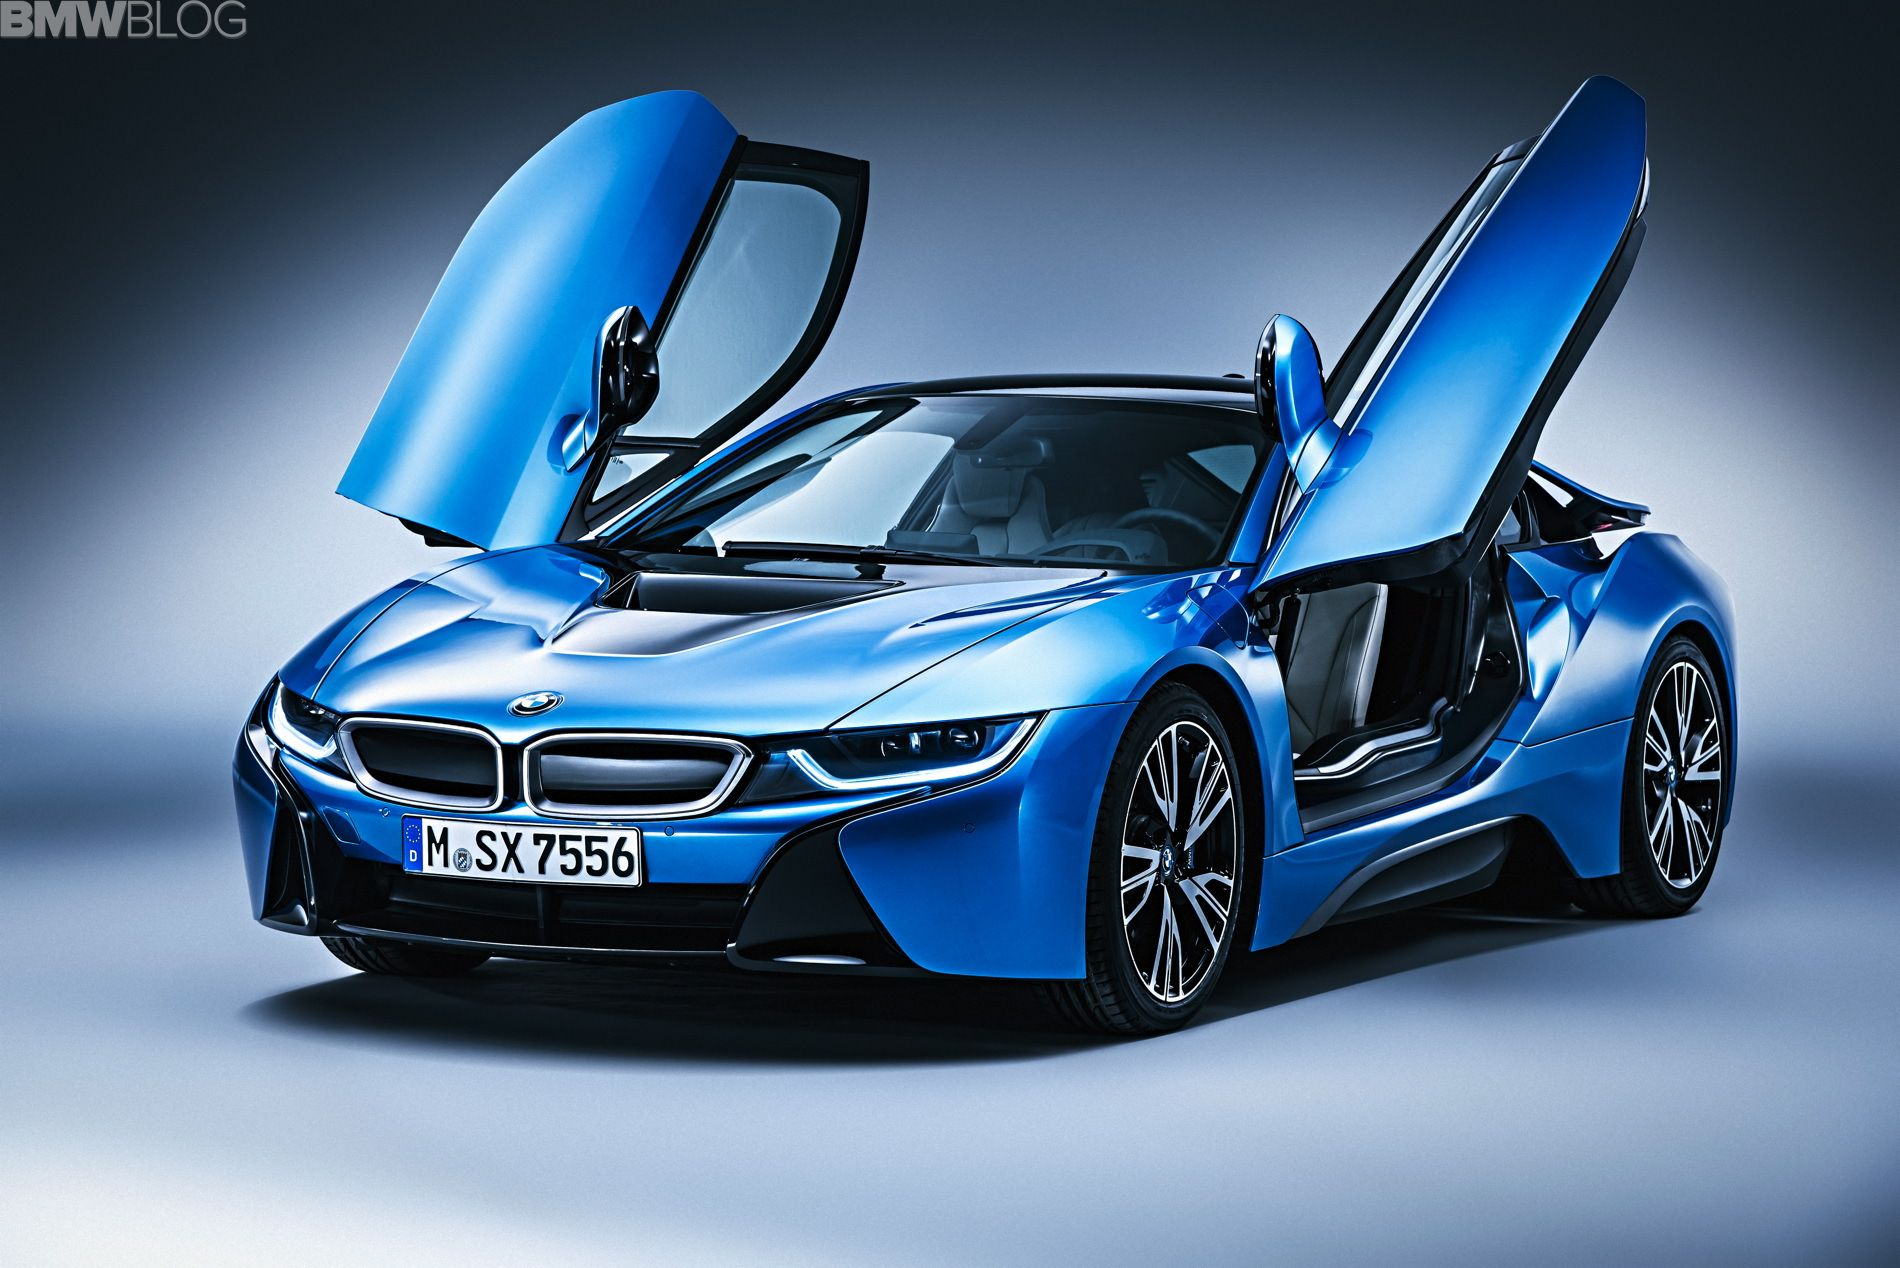 Ac schnitzer tuning 4k bmw i8 2017 cars movement red i8 acs8 bmw cars wallpapers pinterest